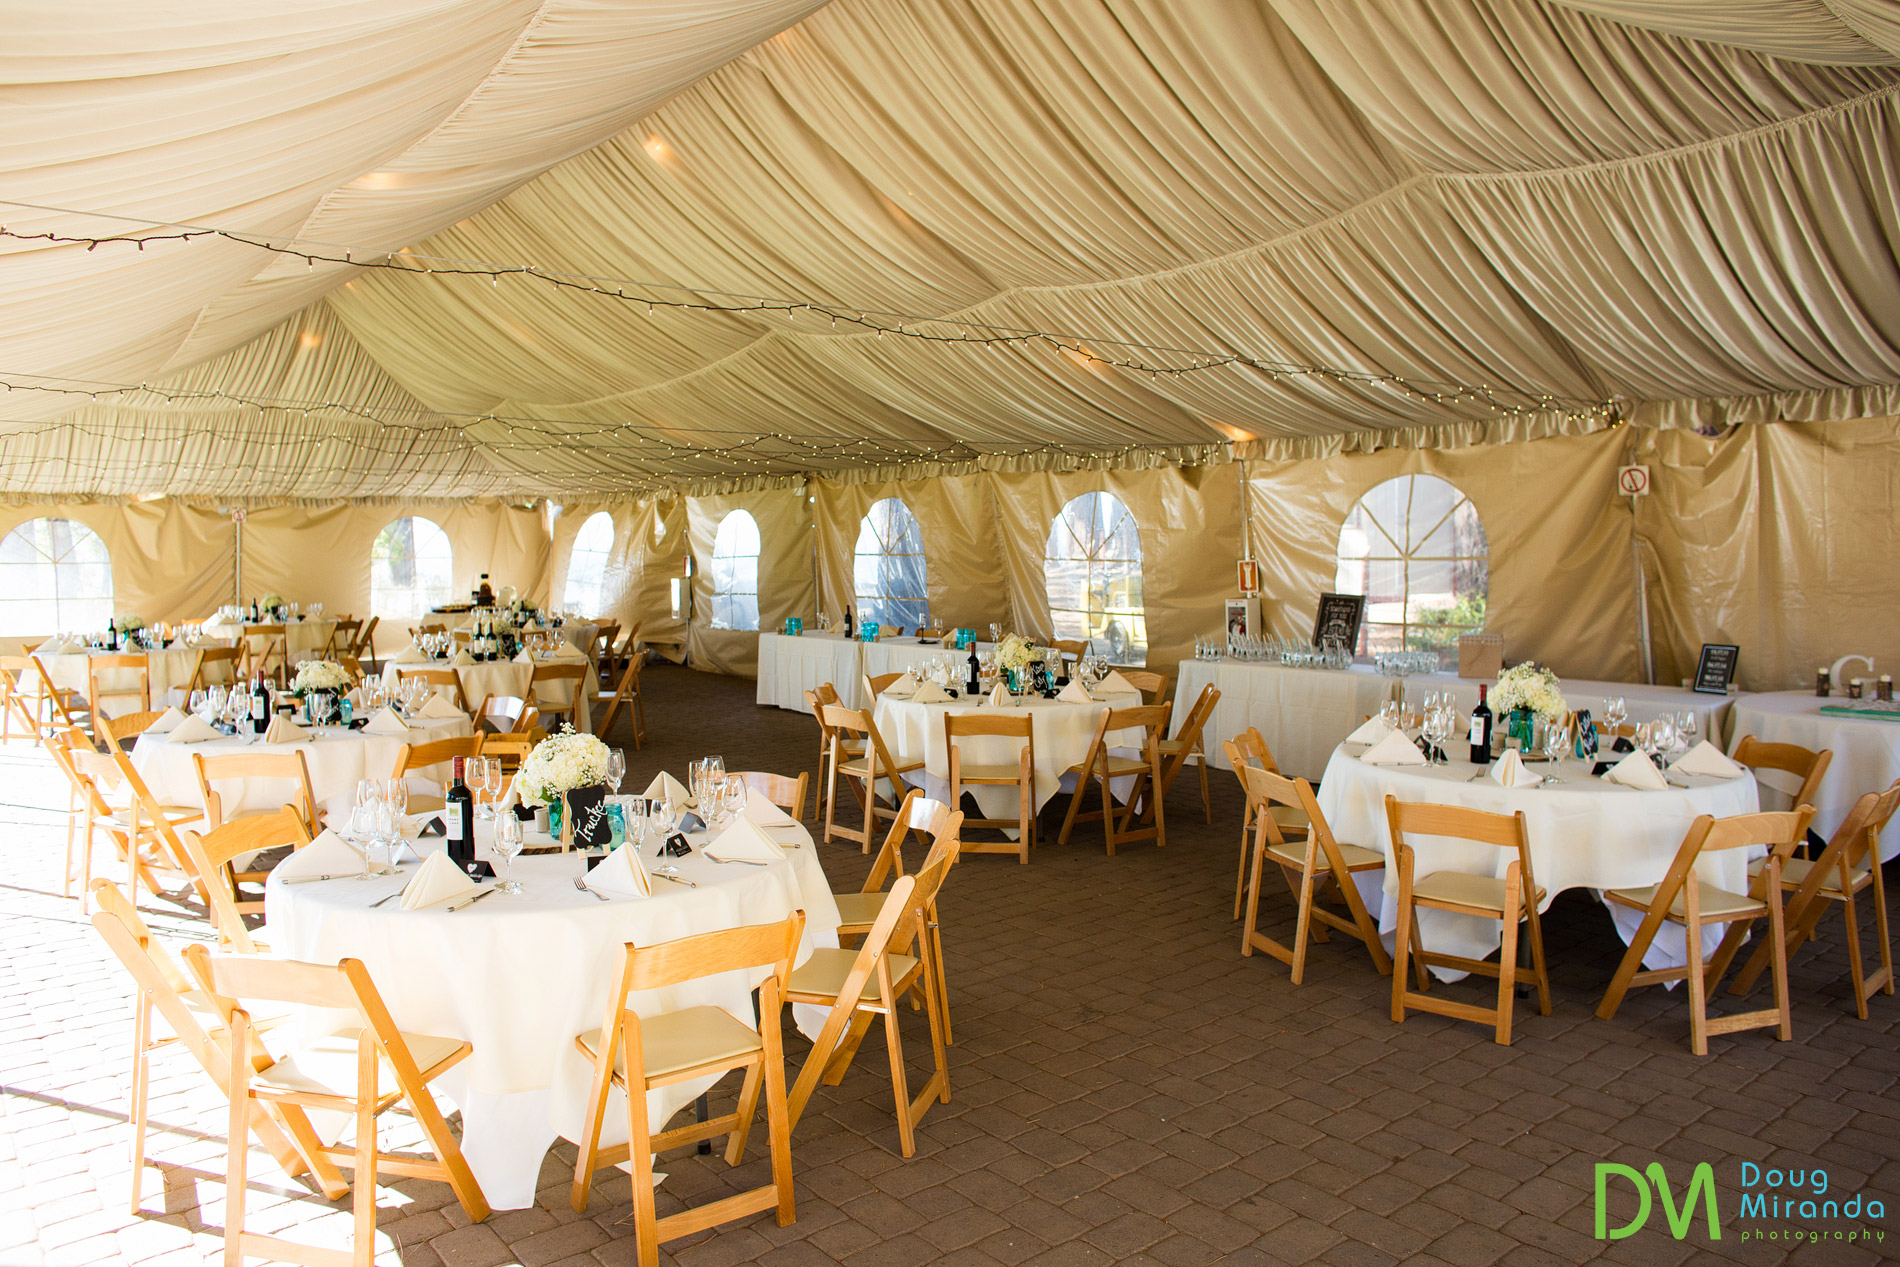 zephyr cove resort wedding reception tent